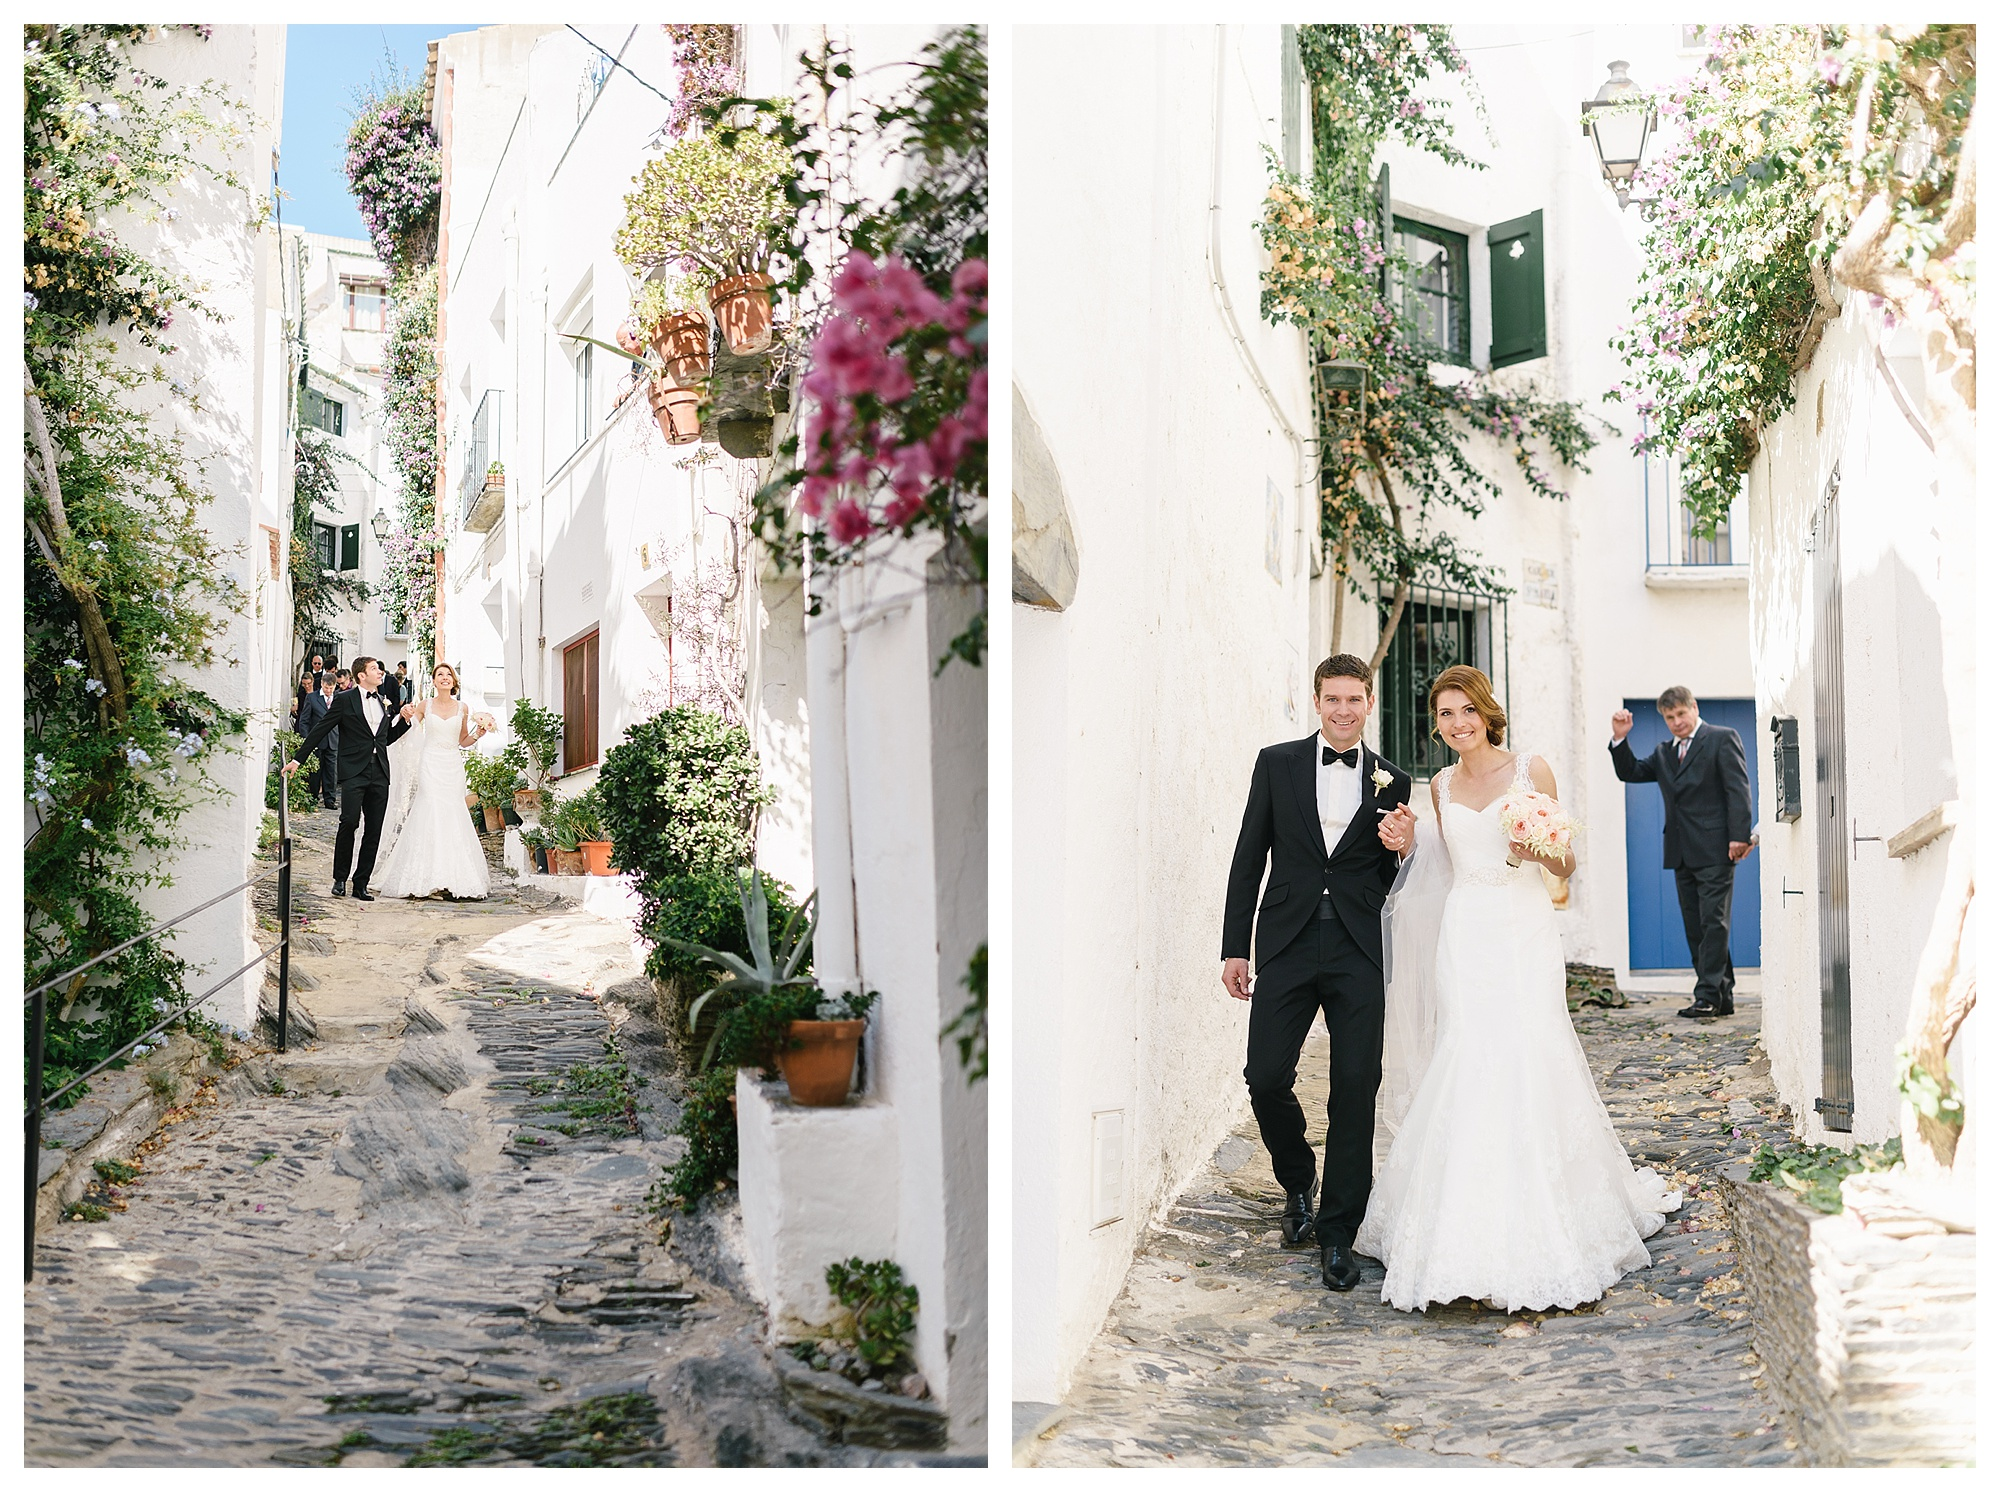 Fotograf Konstanz - Wedding Spain Cadaques Elmar Feuerbacher Photography 22 - Als Destination Wedding Fotograf in Cadaqués, Spanien  - 22 -